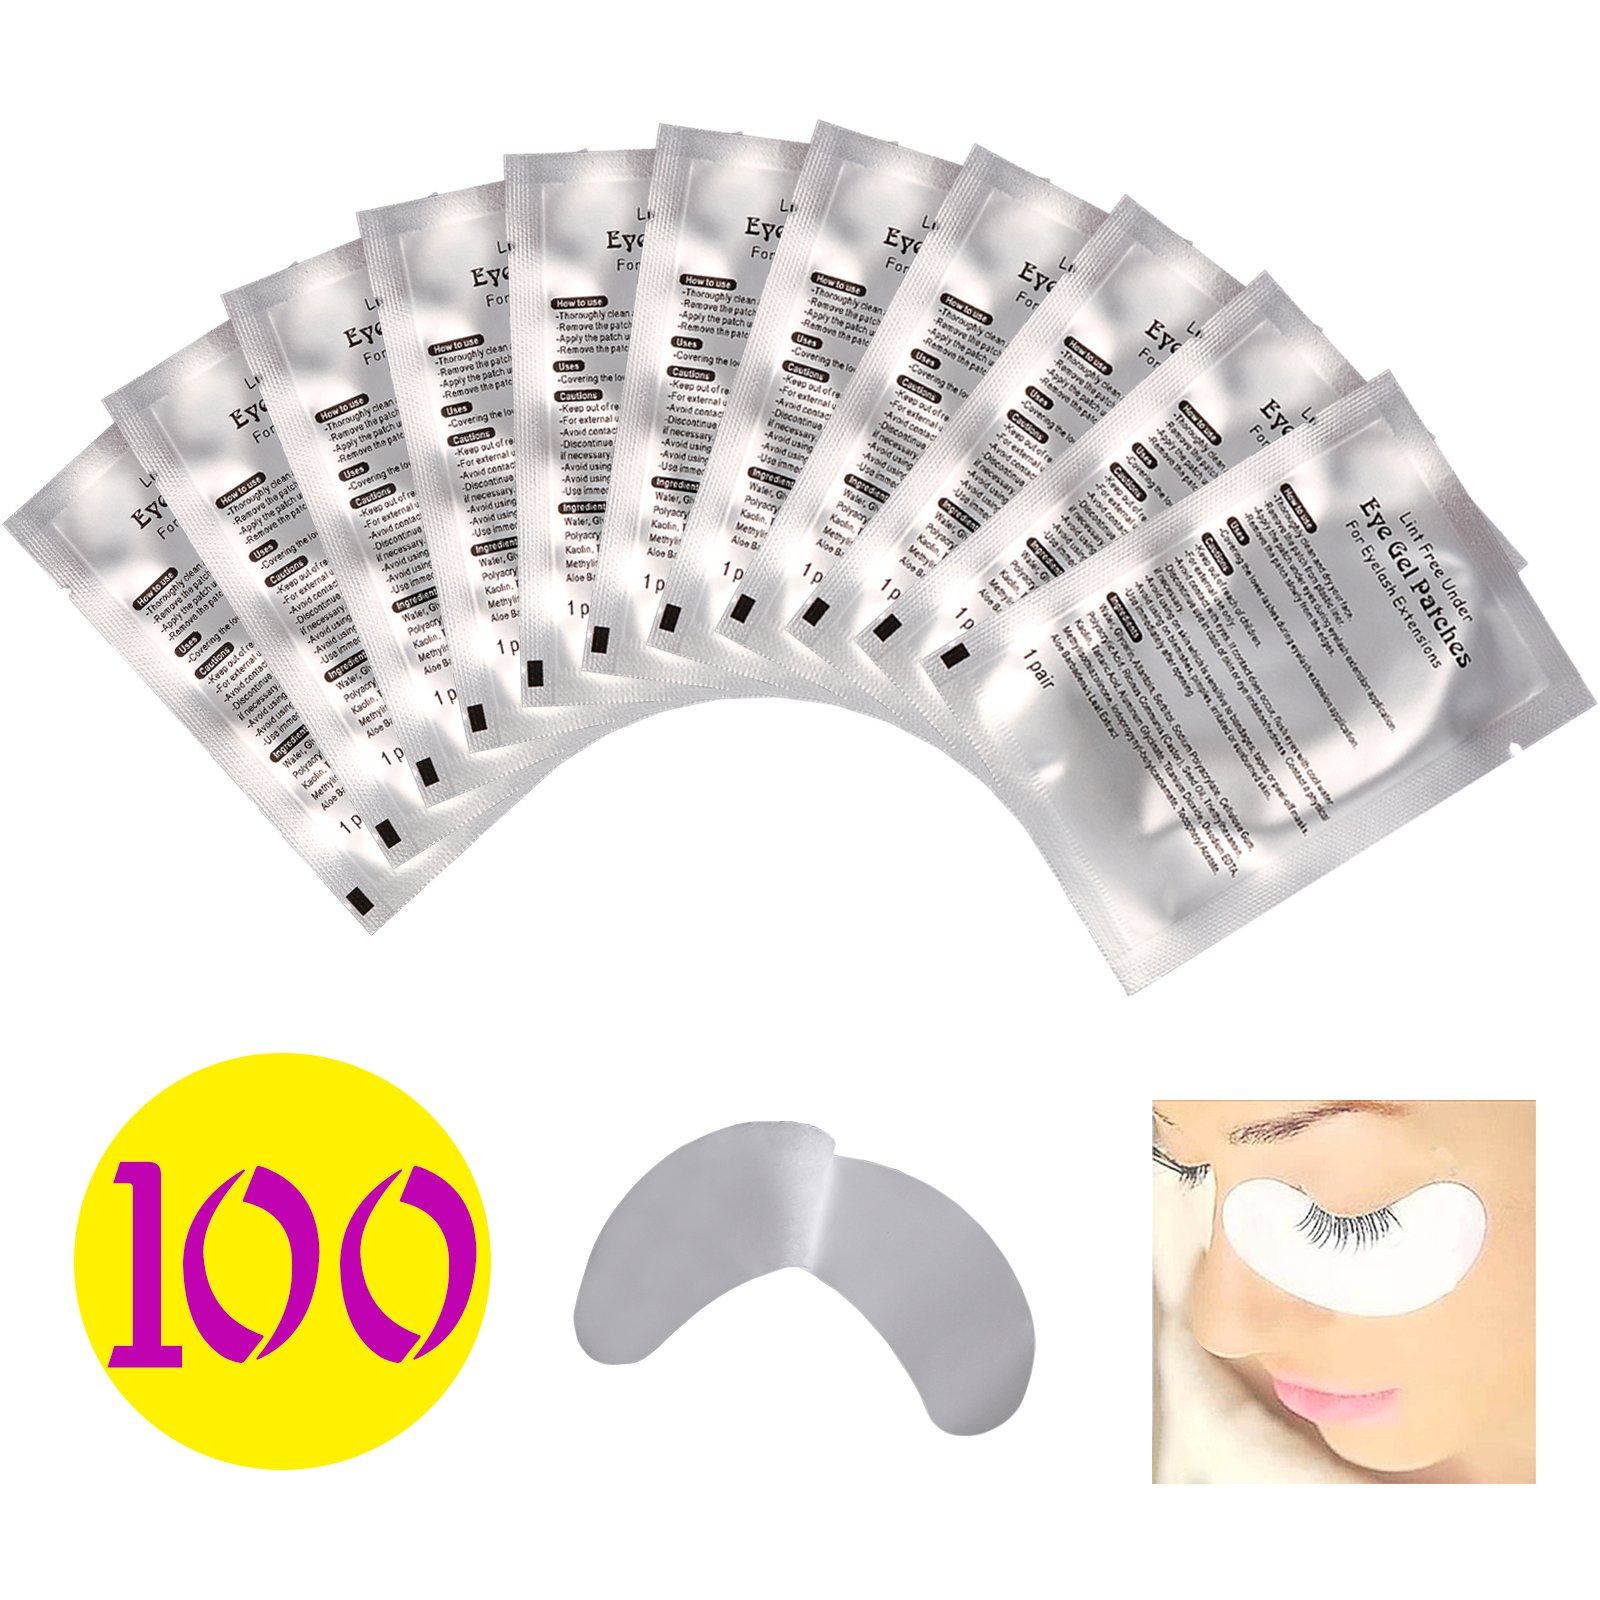 Baisidai 100 Pairs Professional Lint Free Under Eye Gel Pad Patches for Eyelash Extensions (100 Pairs)